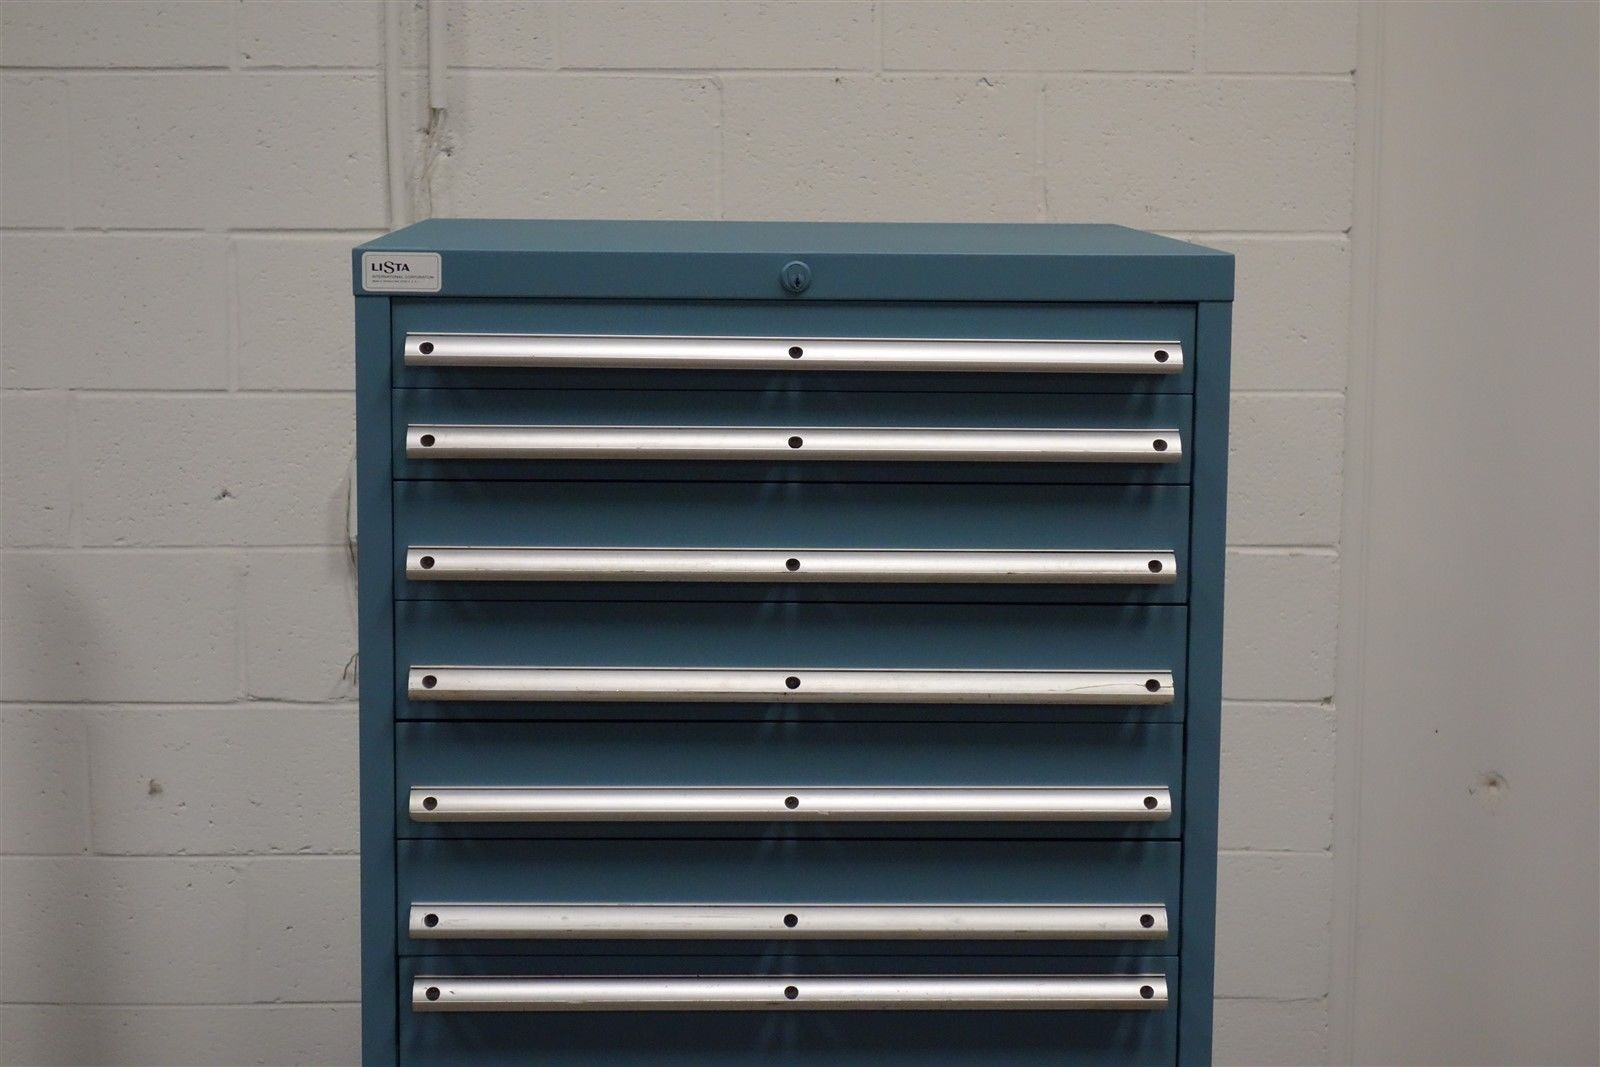 Exceptionnel Used Lista 10 Drawer Cabinet Industrial Tool ...